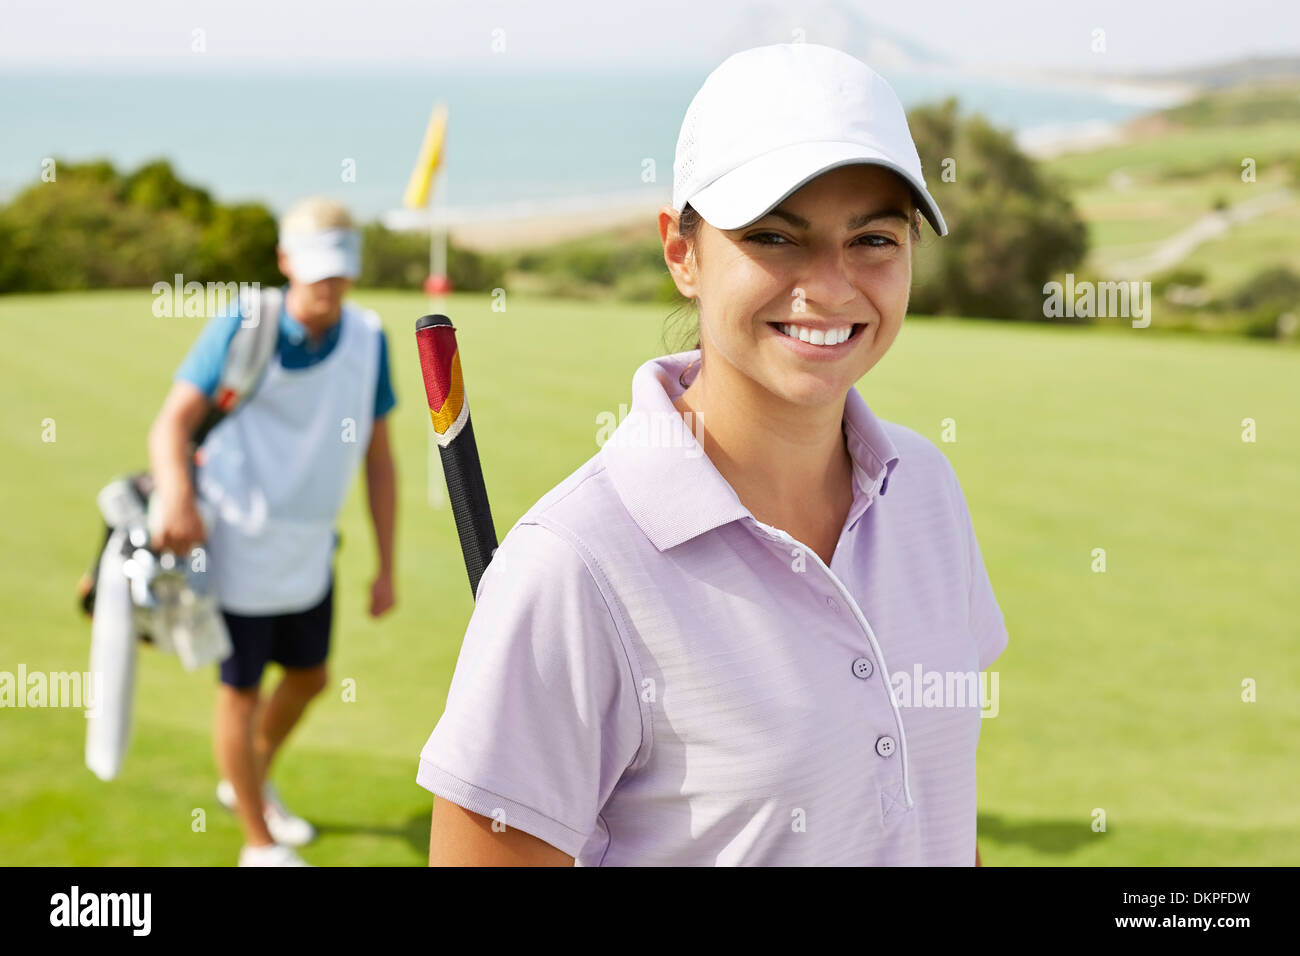 Smiling woman on golf course - Stock Image